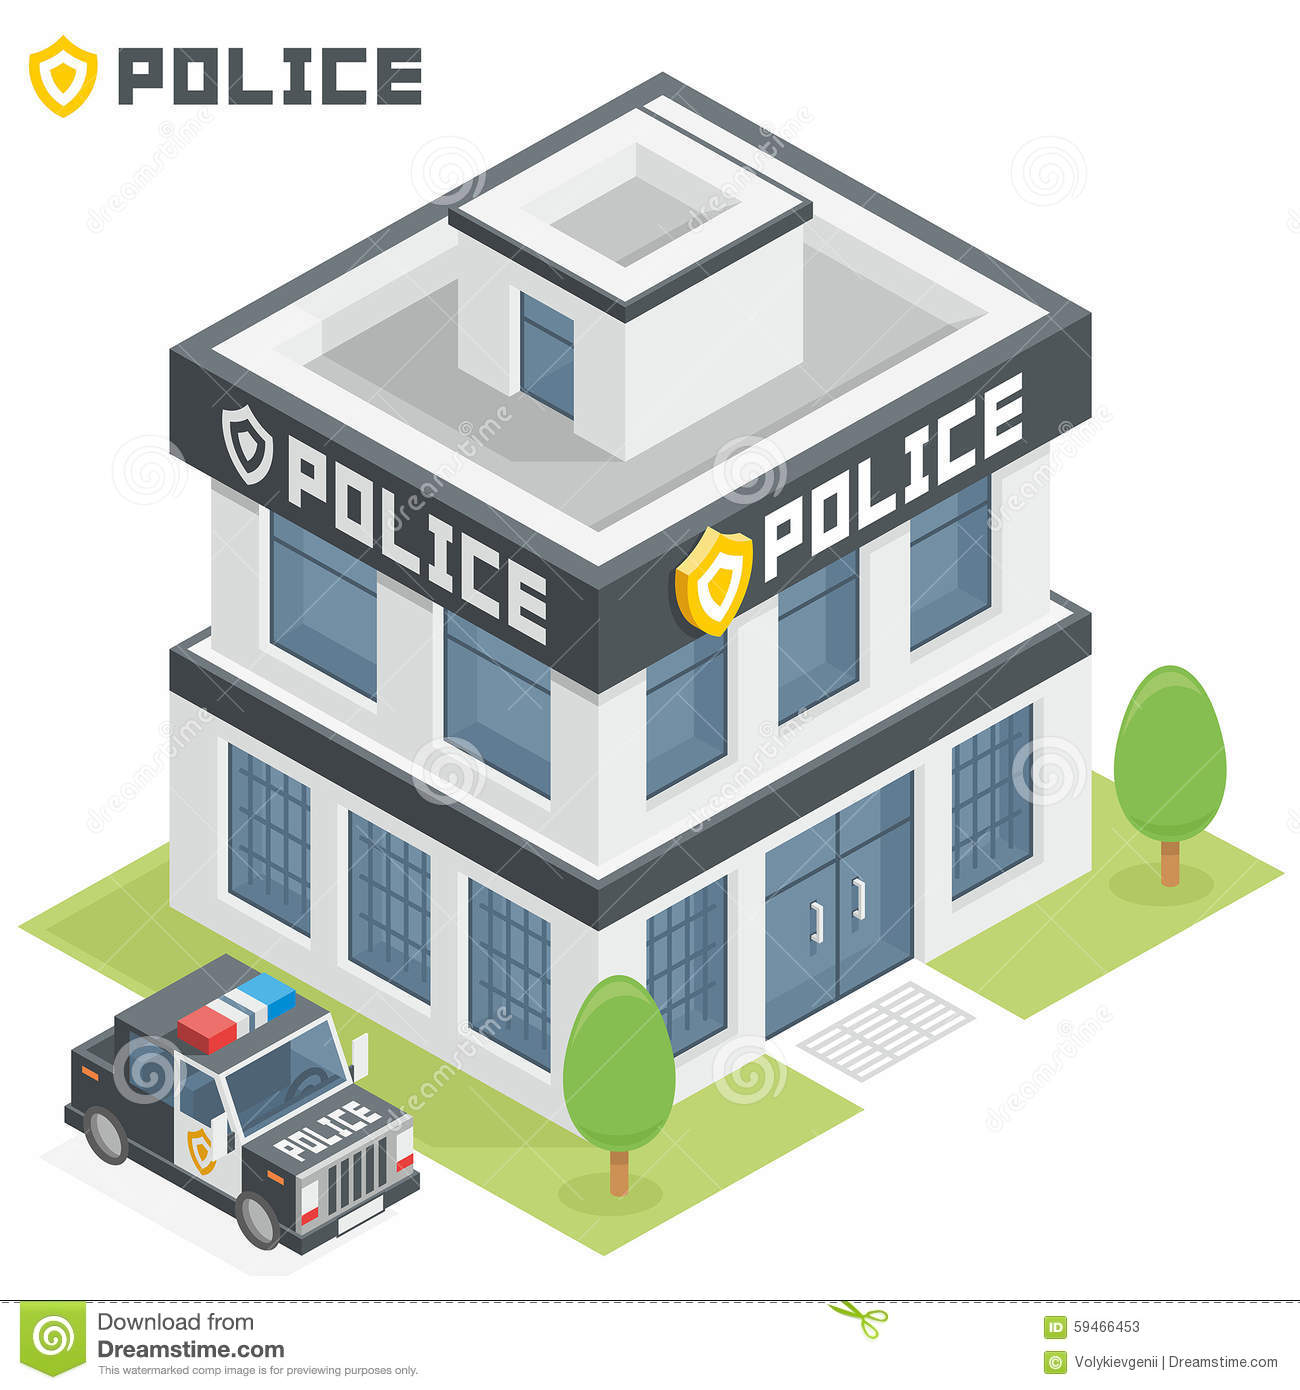 Police department building stock vector. Illustration of ...